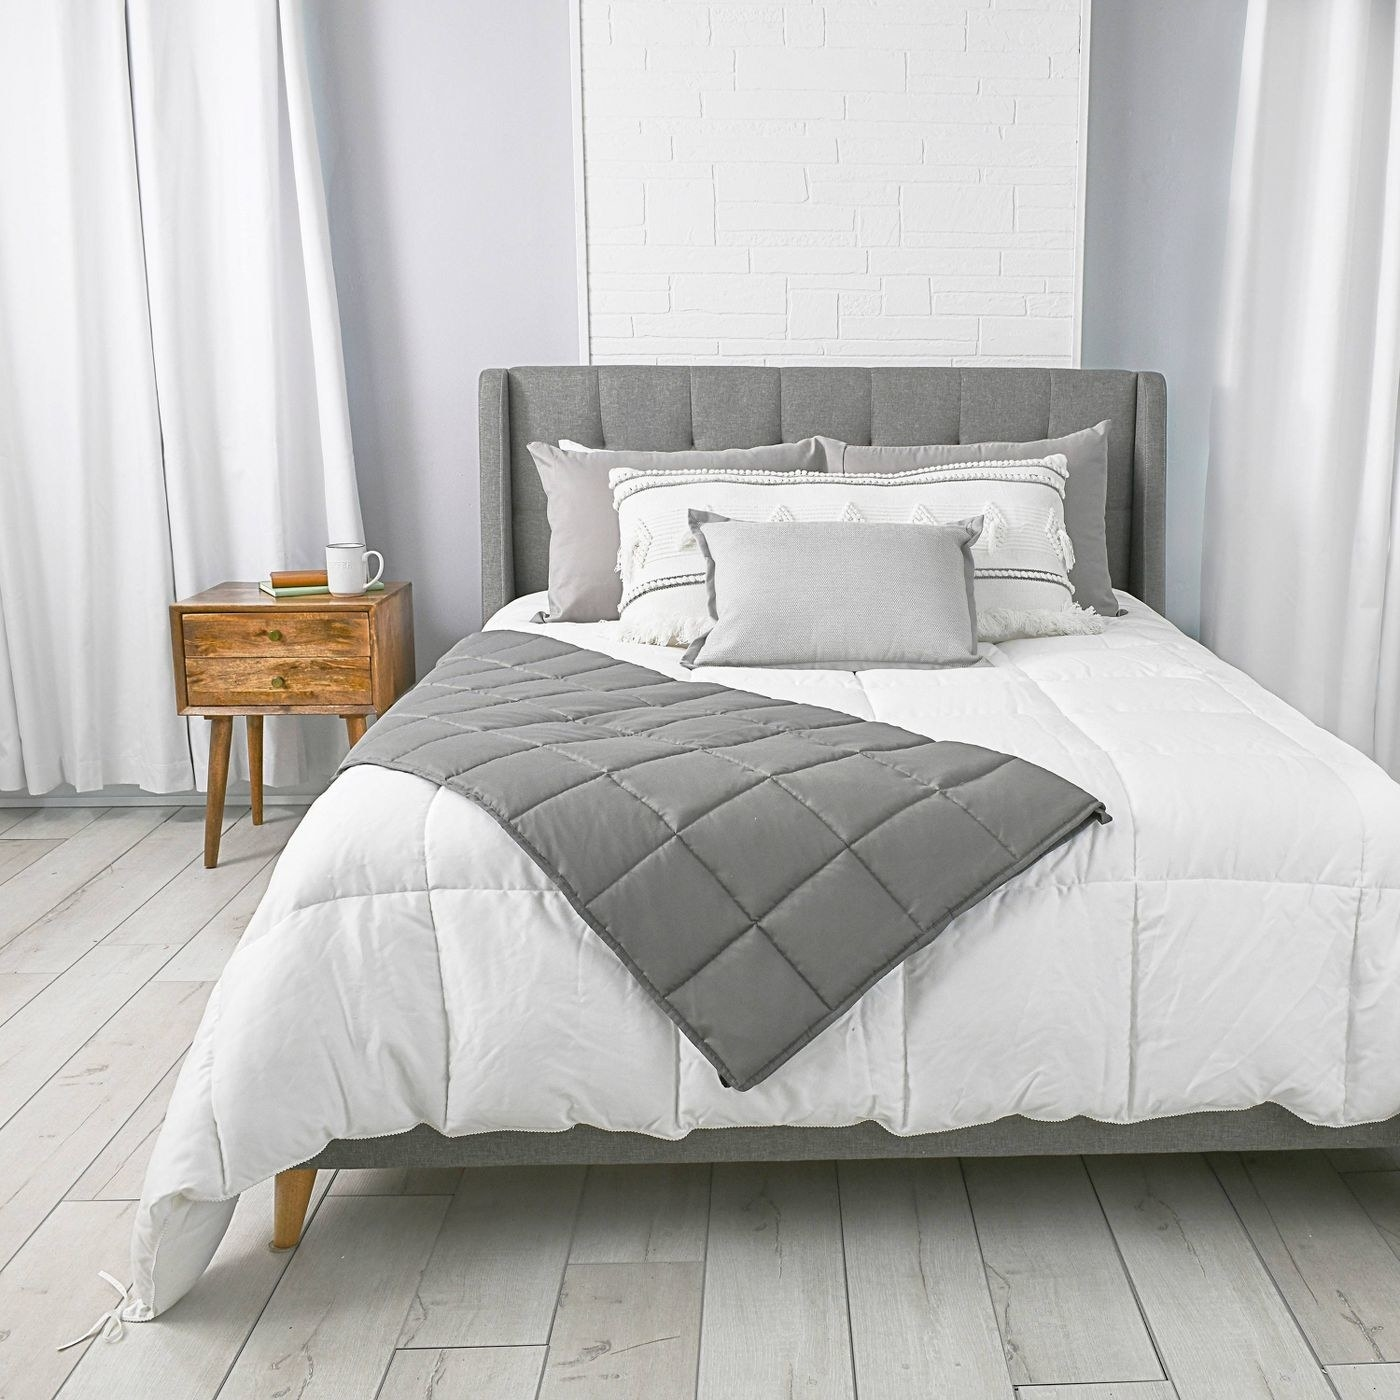 The weighted blanket in gray draped over a bed